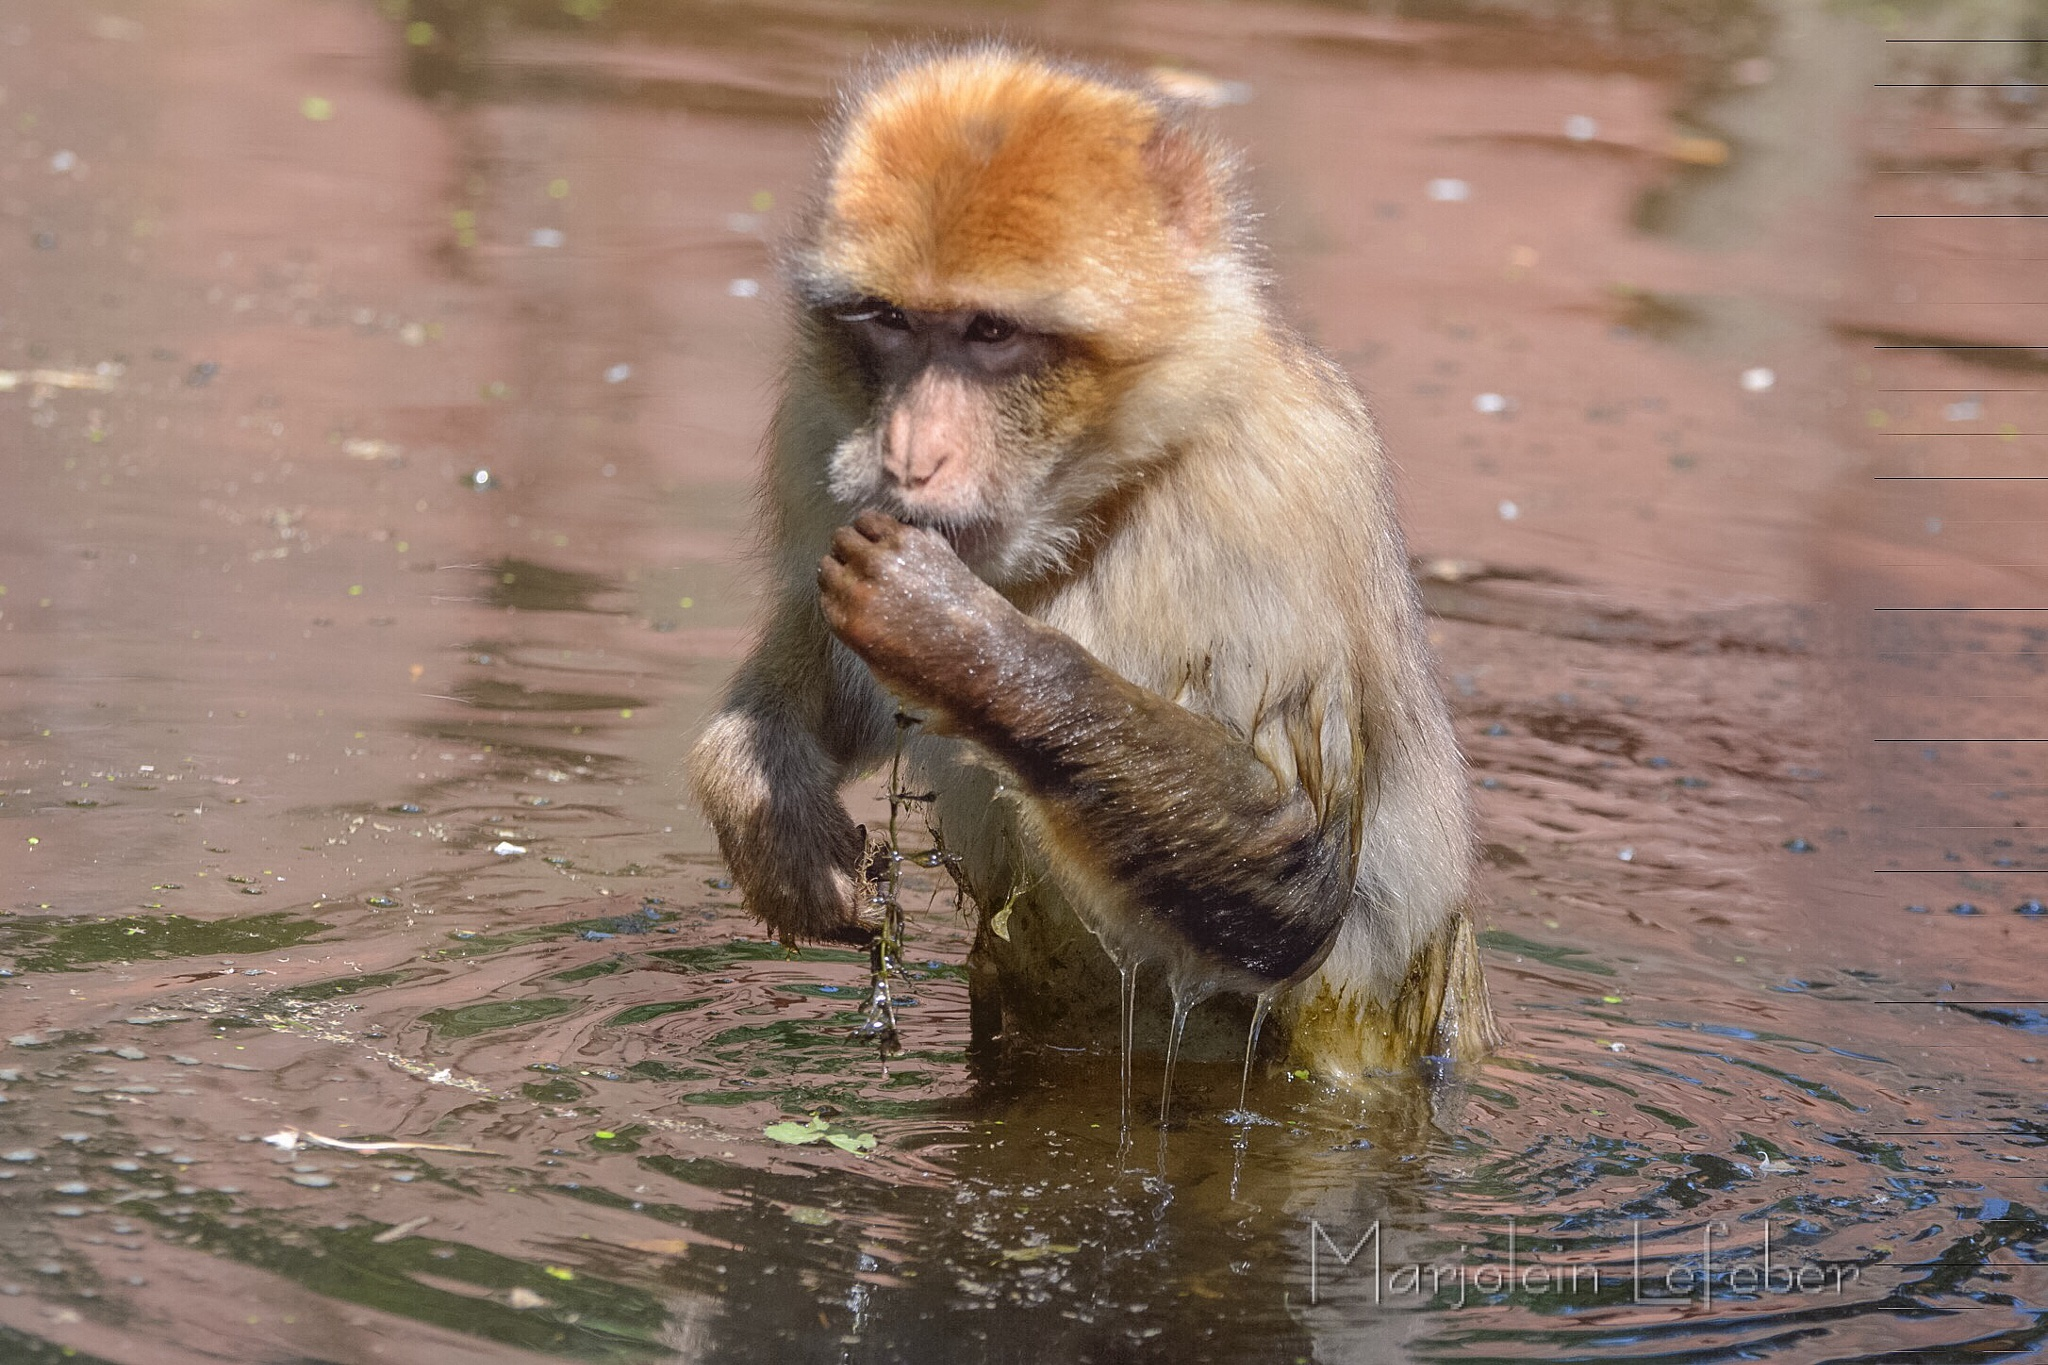 Monkey looking for food  by Marjoleinlefeber